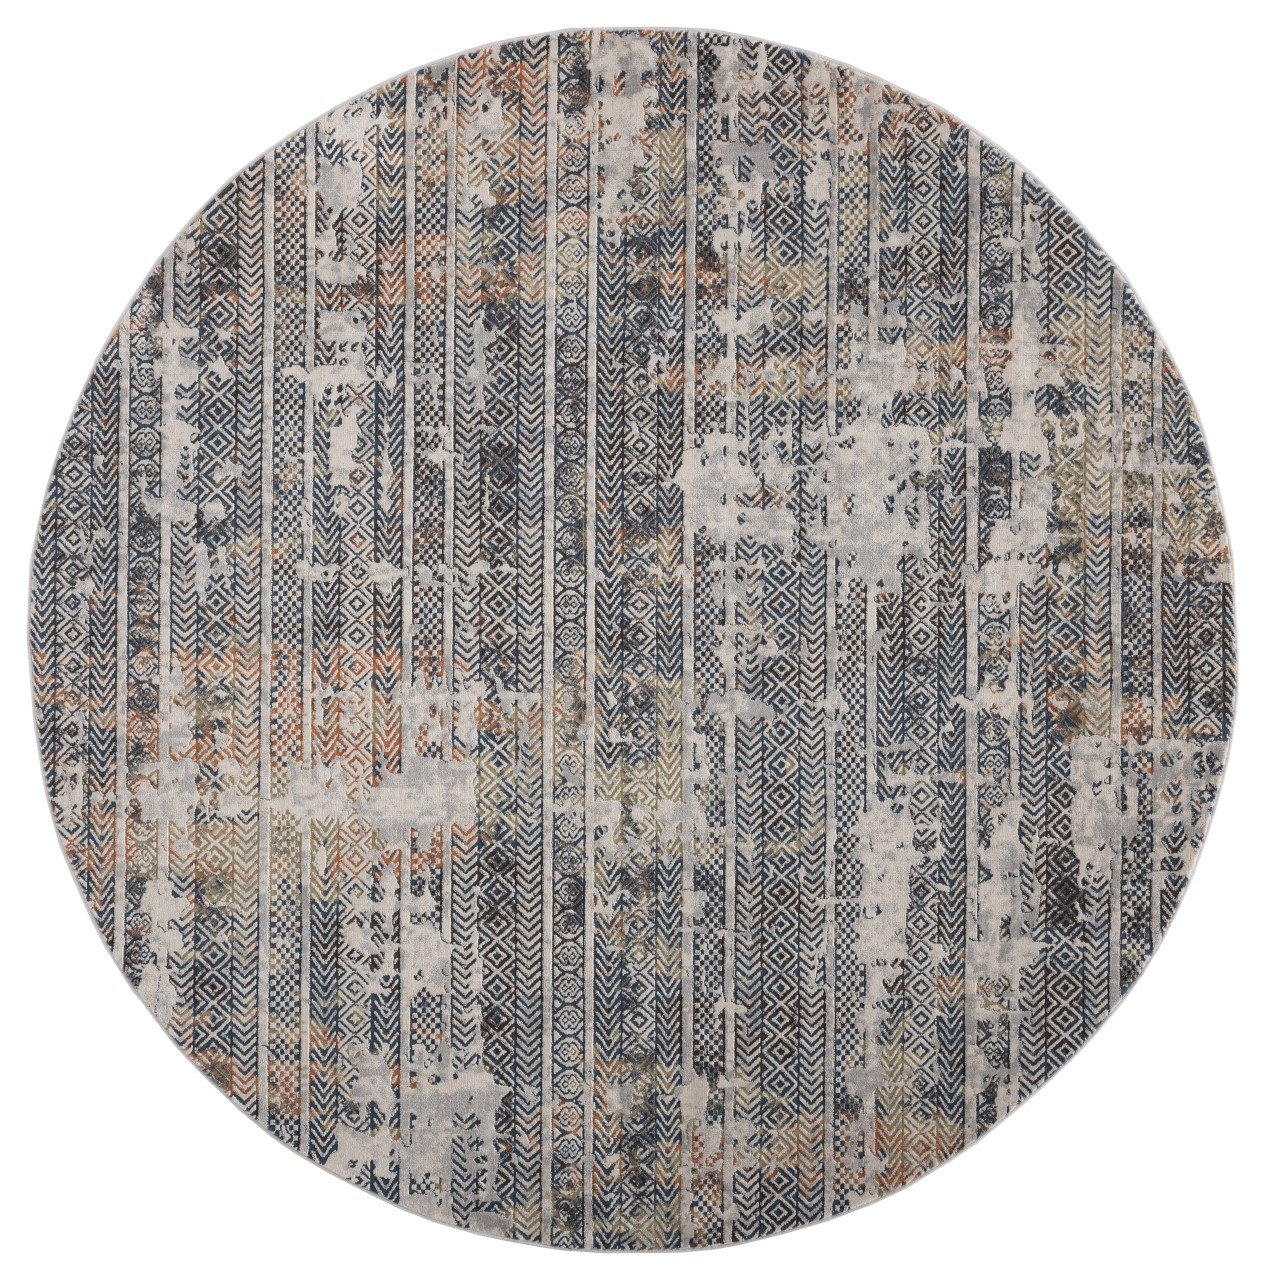 United Weavers Allure River Round Rug